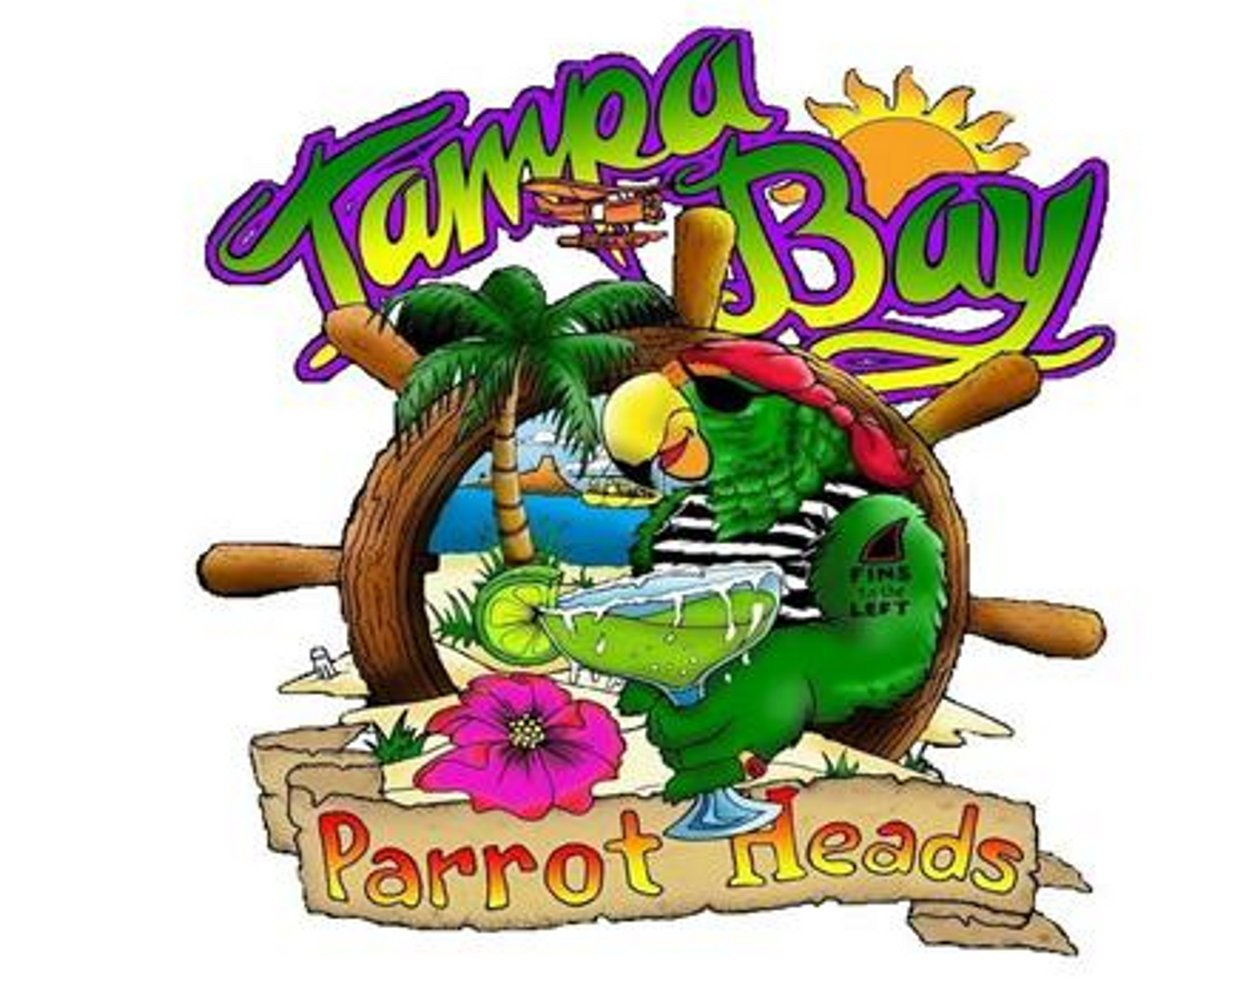 The Skipper's Blog: HAPPY BIRTHDAY TAMPA BAY PARROT HEADS in PARADISE ...